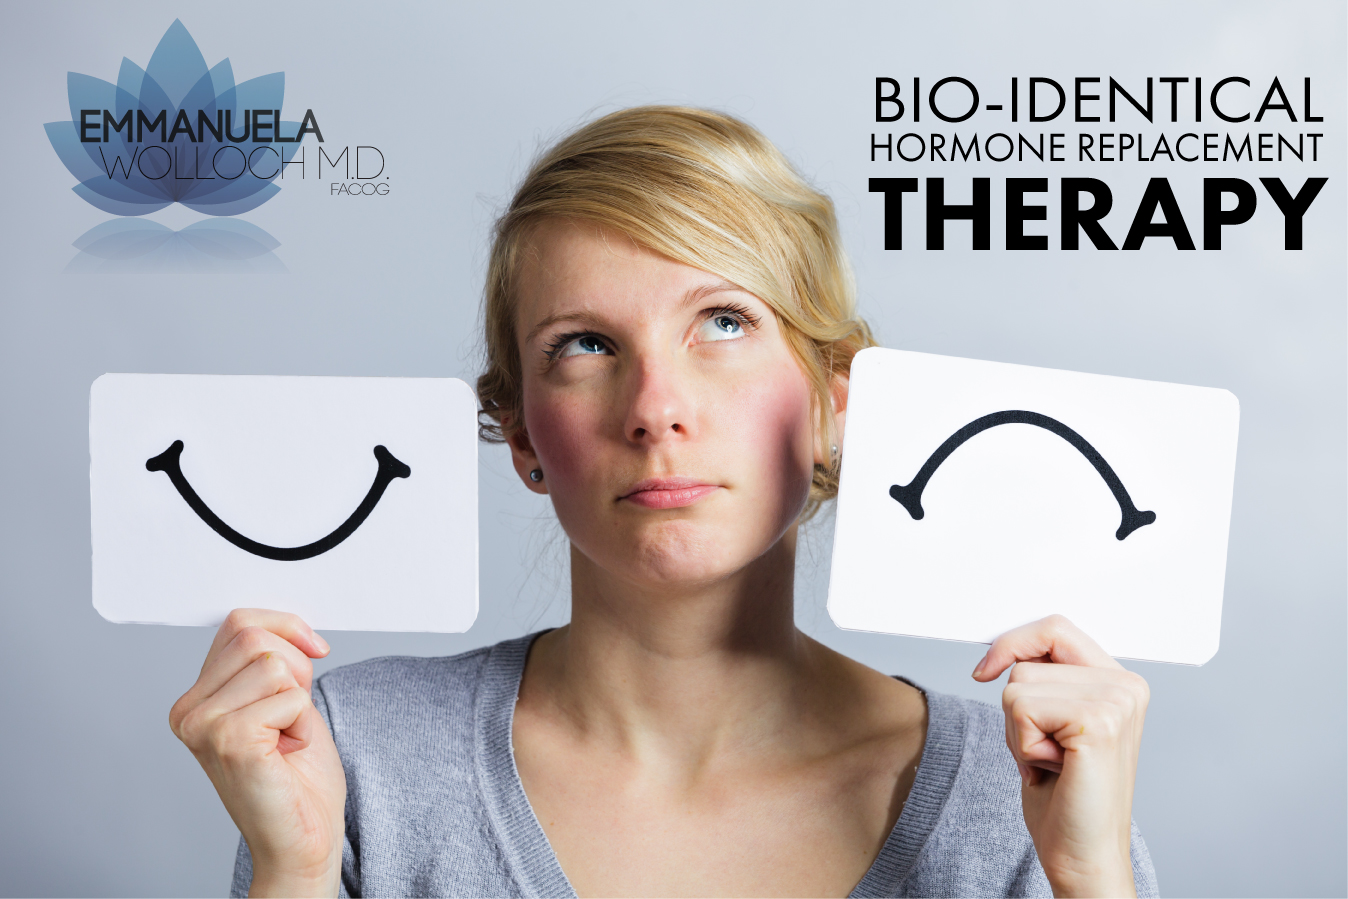 Bio-identical Hormone Replacement Therapy: Pellet Implants